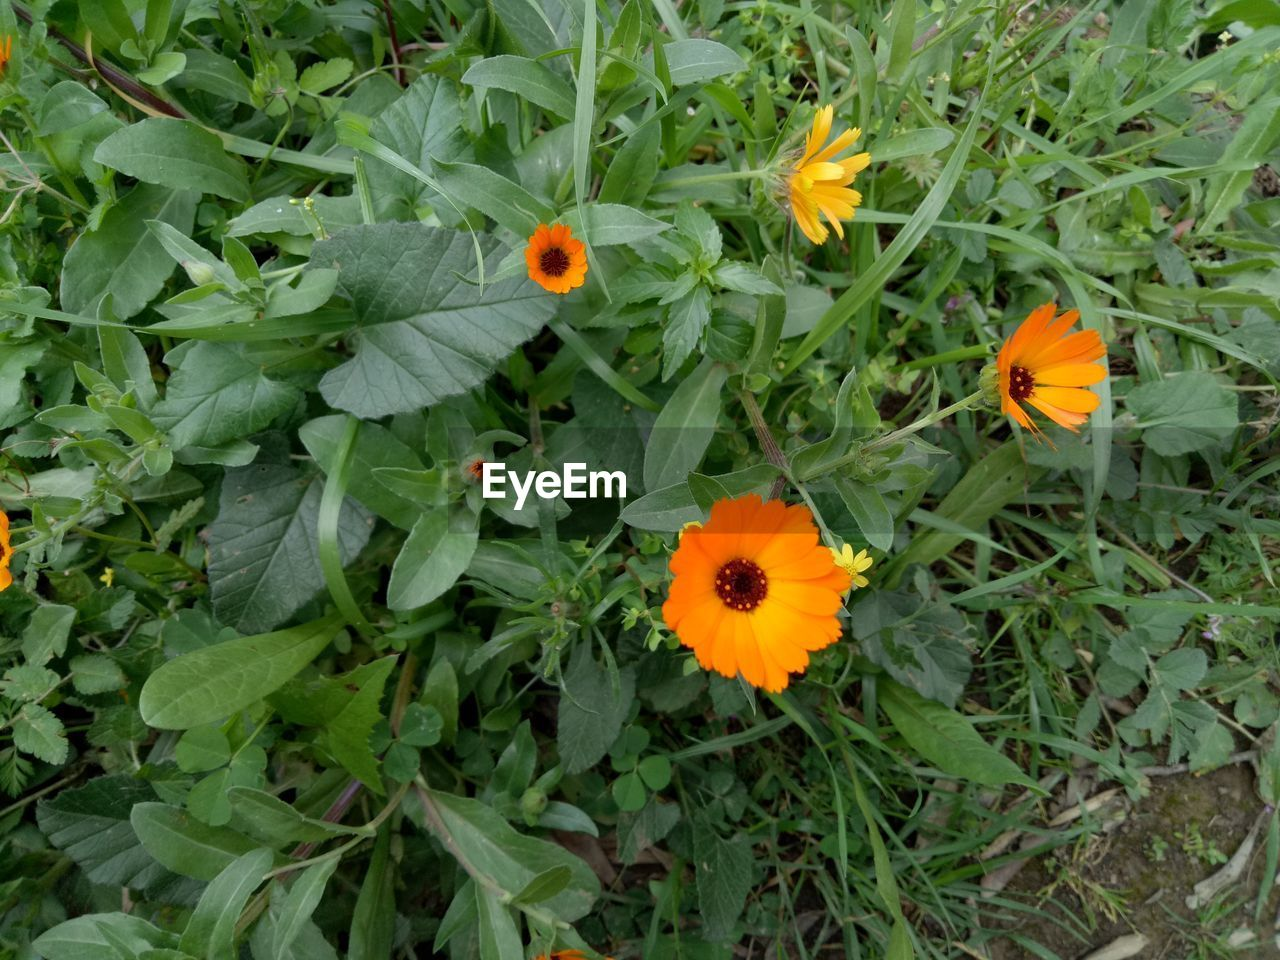 flower, growth, petal, orange color, flower head, high angle view, freshness, beauty in nature, fragility, green color, nature, plant, blooming, no people, outdoors, leaf, day, close-up